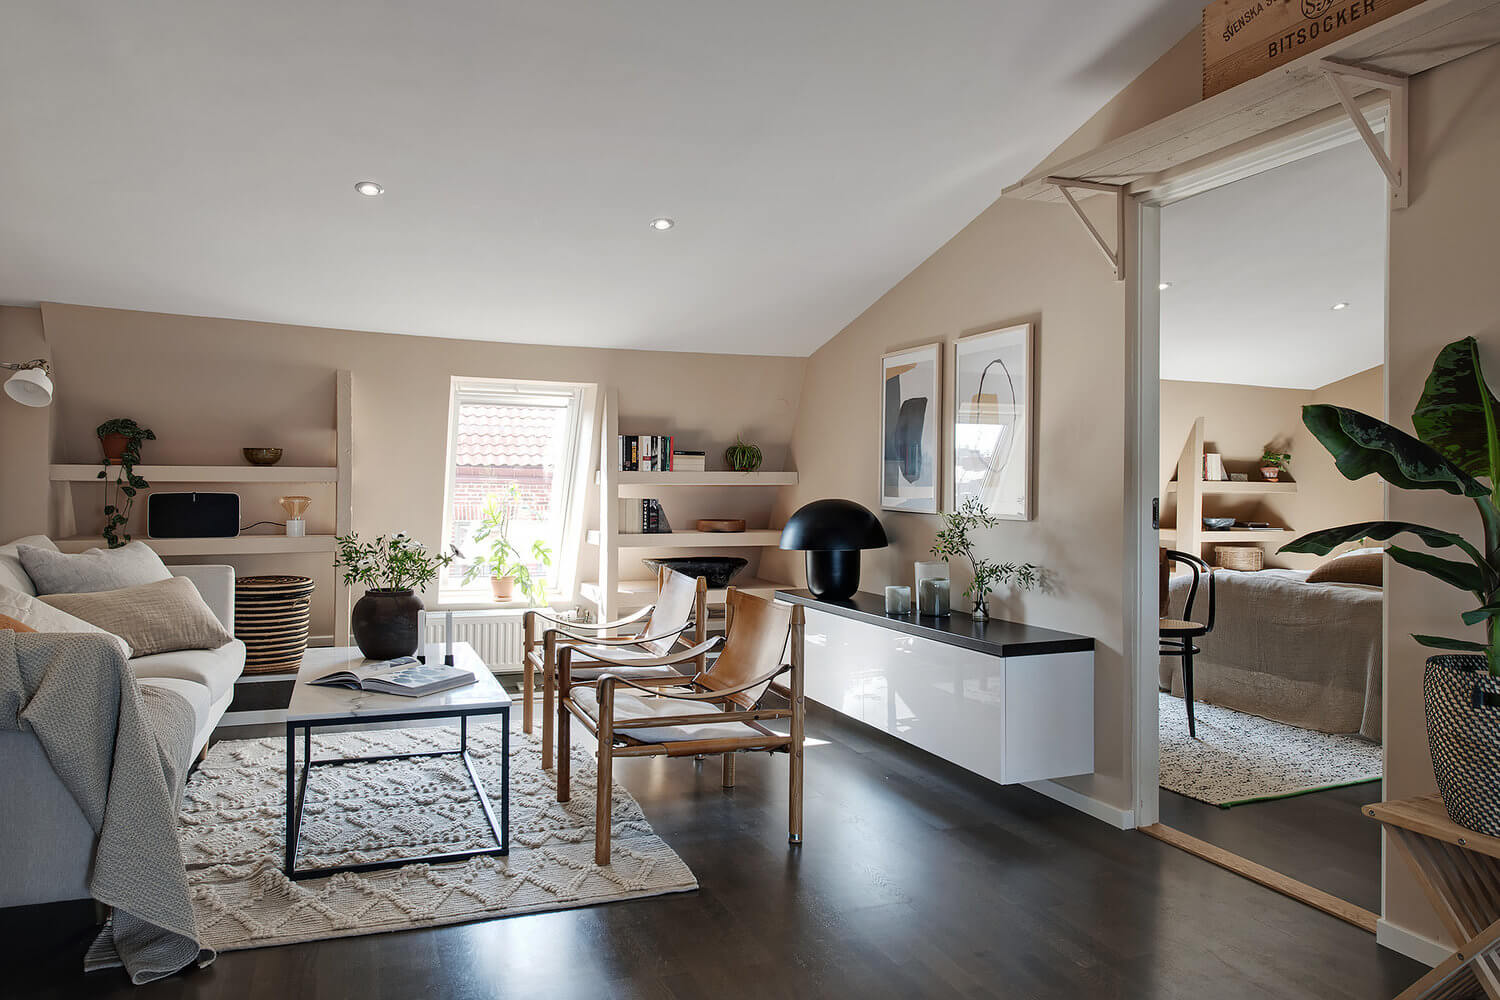 A Scandinavian Attic Apartment Painted in Soft Earthy Tones